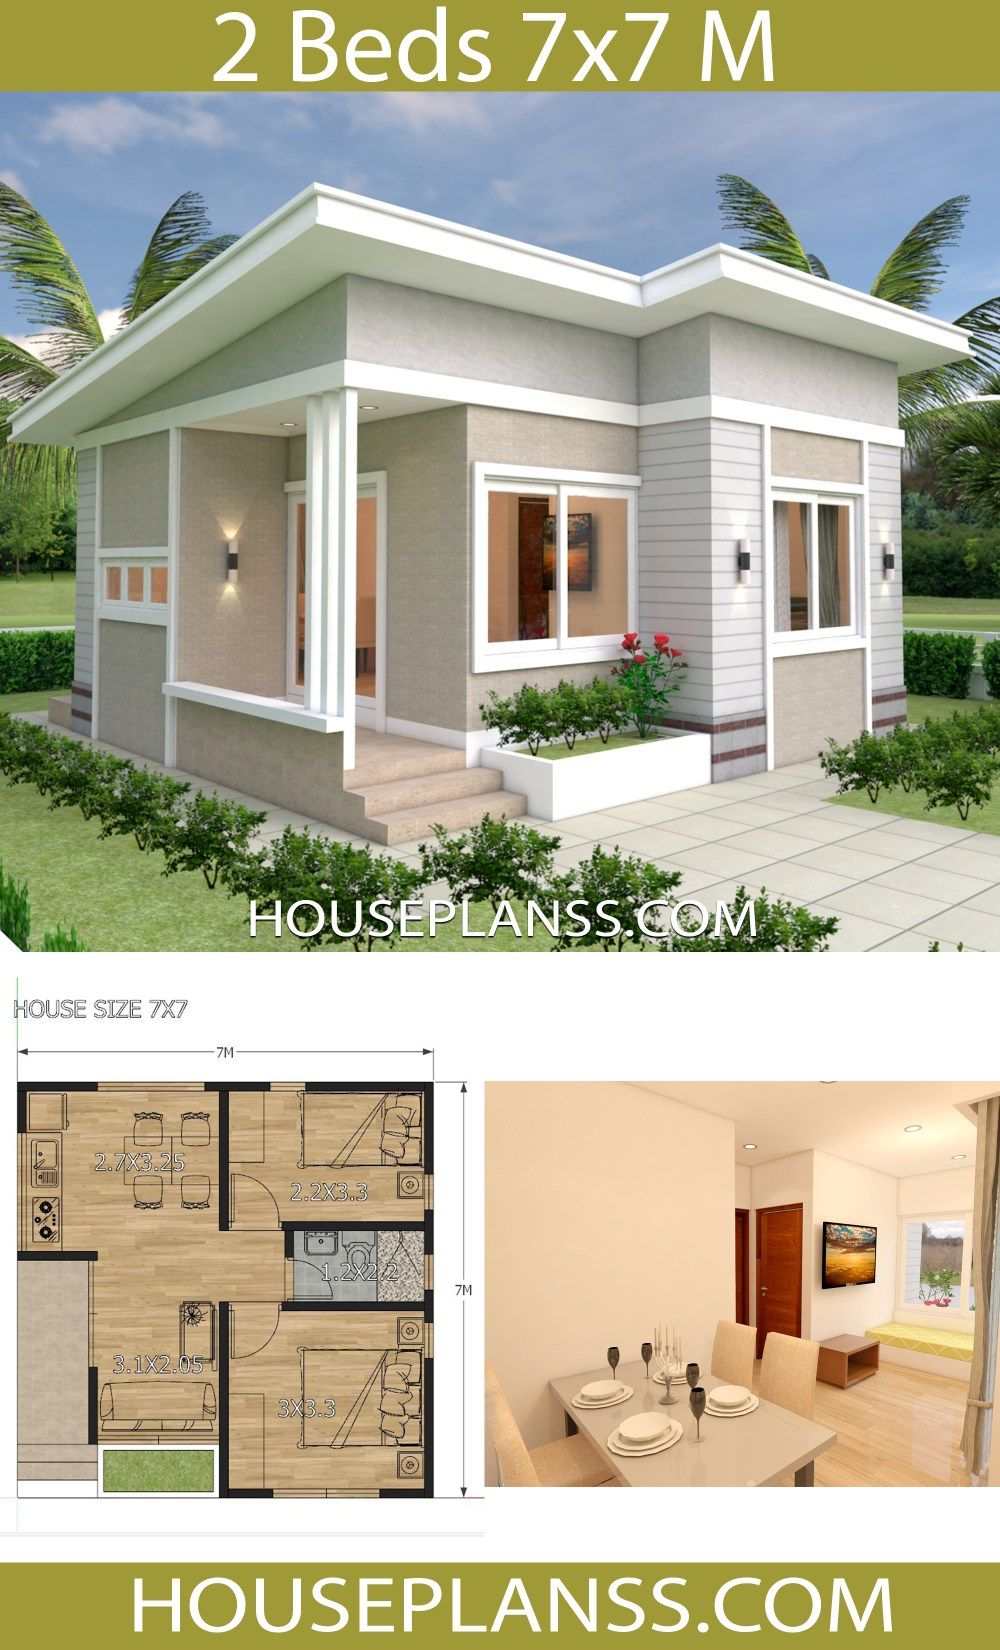 Small House Design Plans 7x7 With 2 Bedrooms House Plans 3d Small House Design Plans Small House Design Sims House Plans